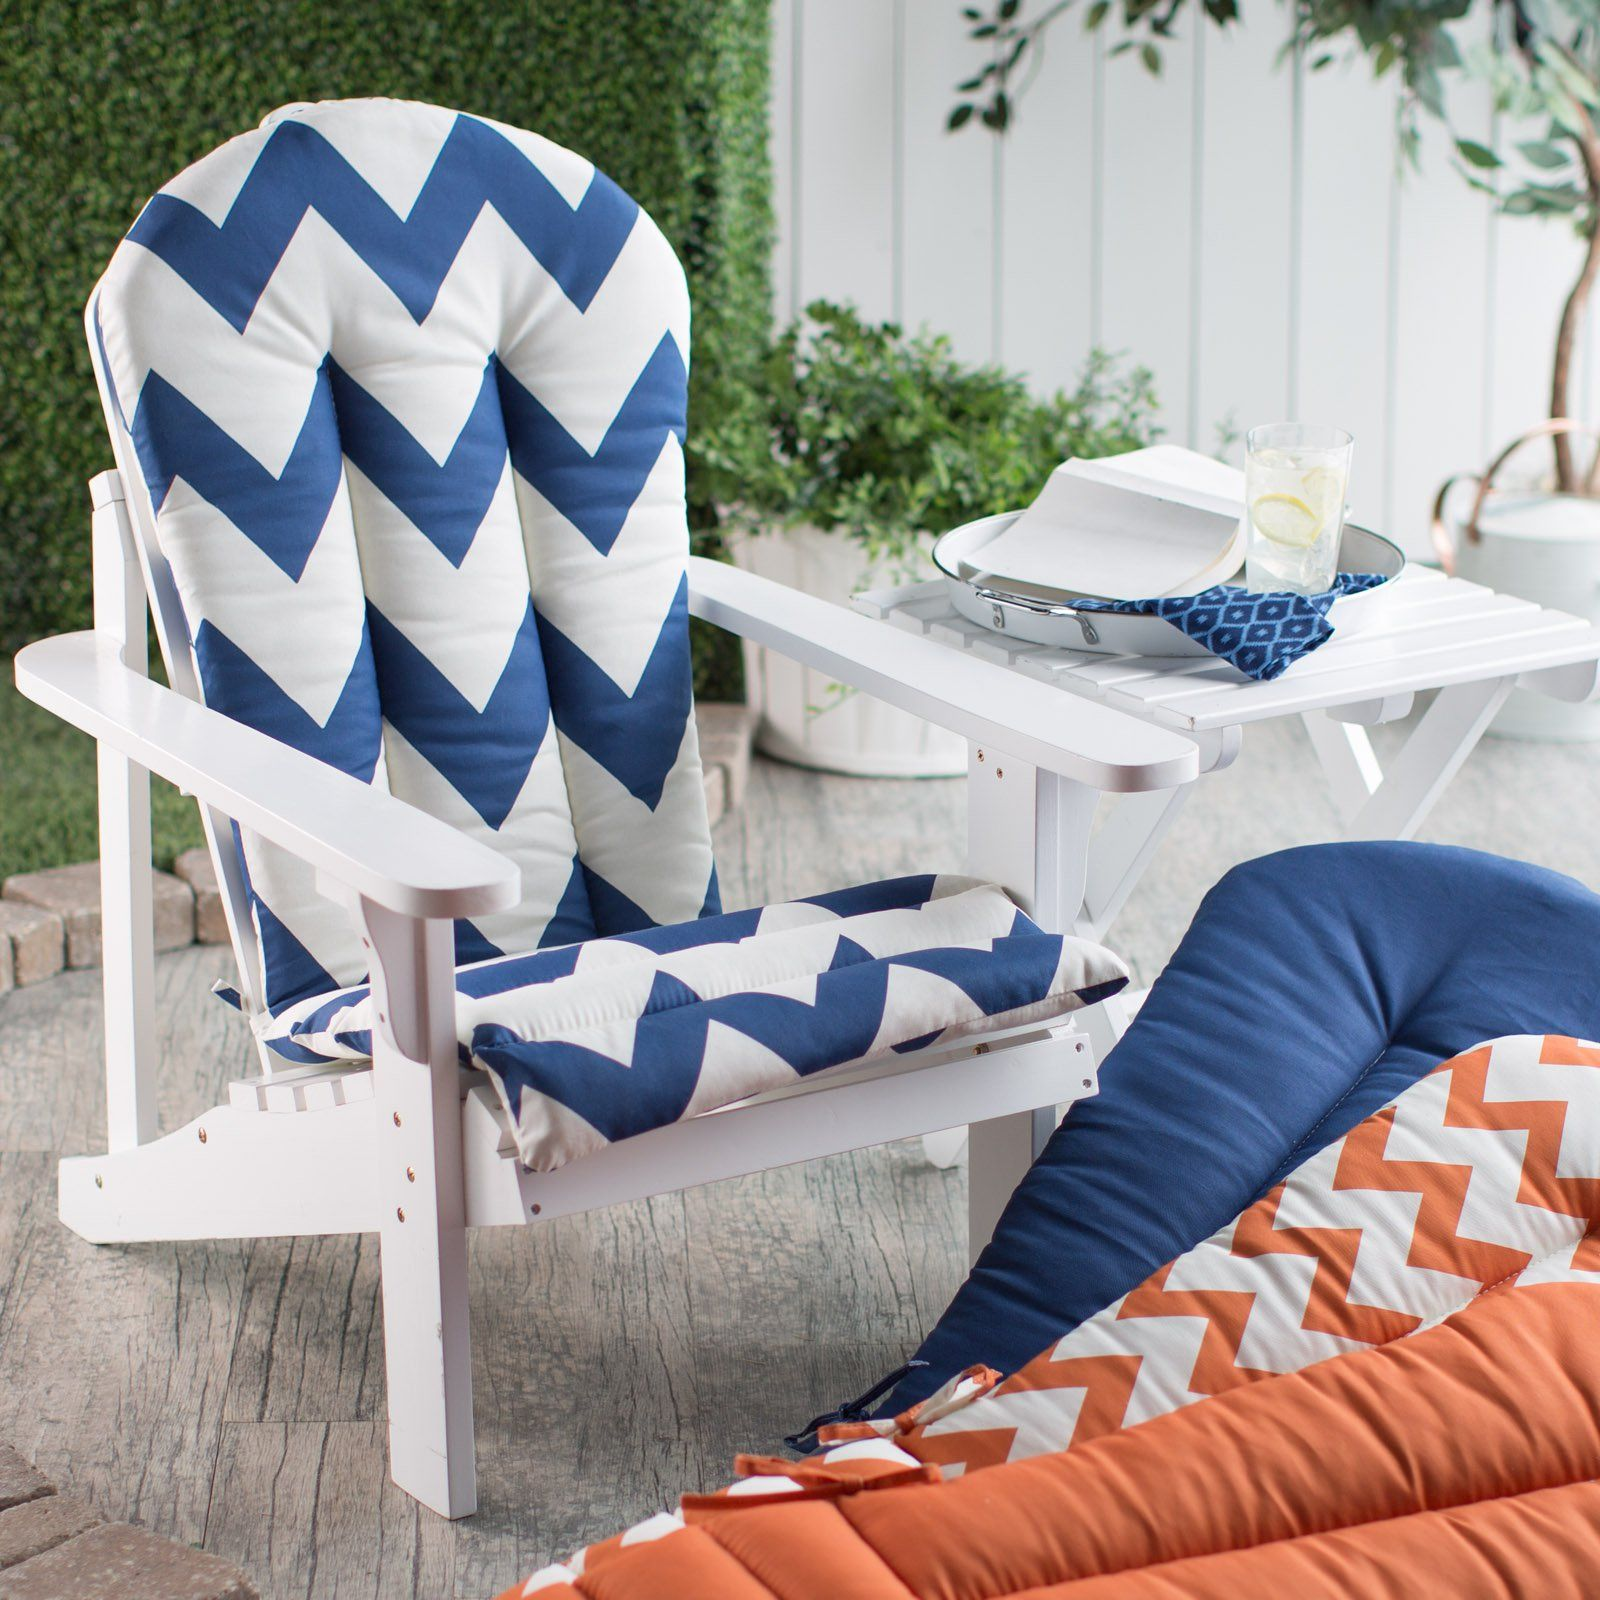 Coral Coast Valencia Adirondack Chair Cushion | From Hayneedle.com